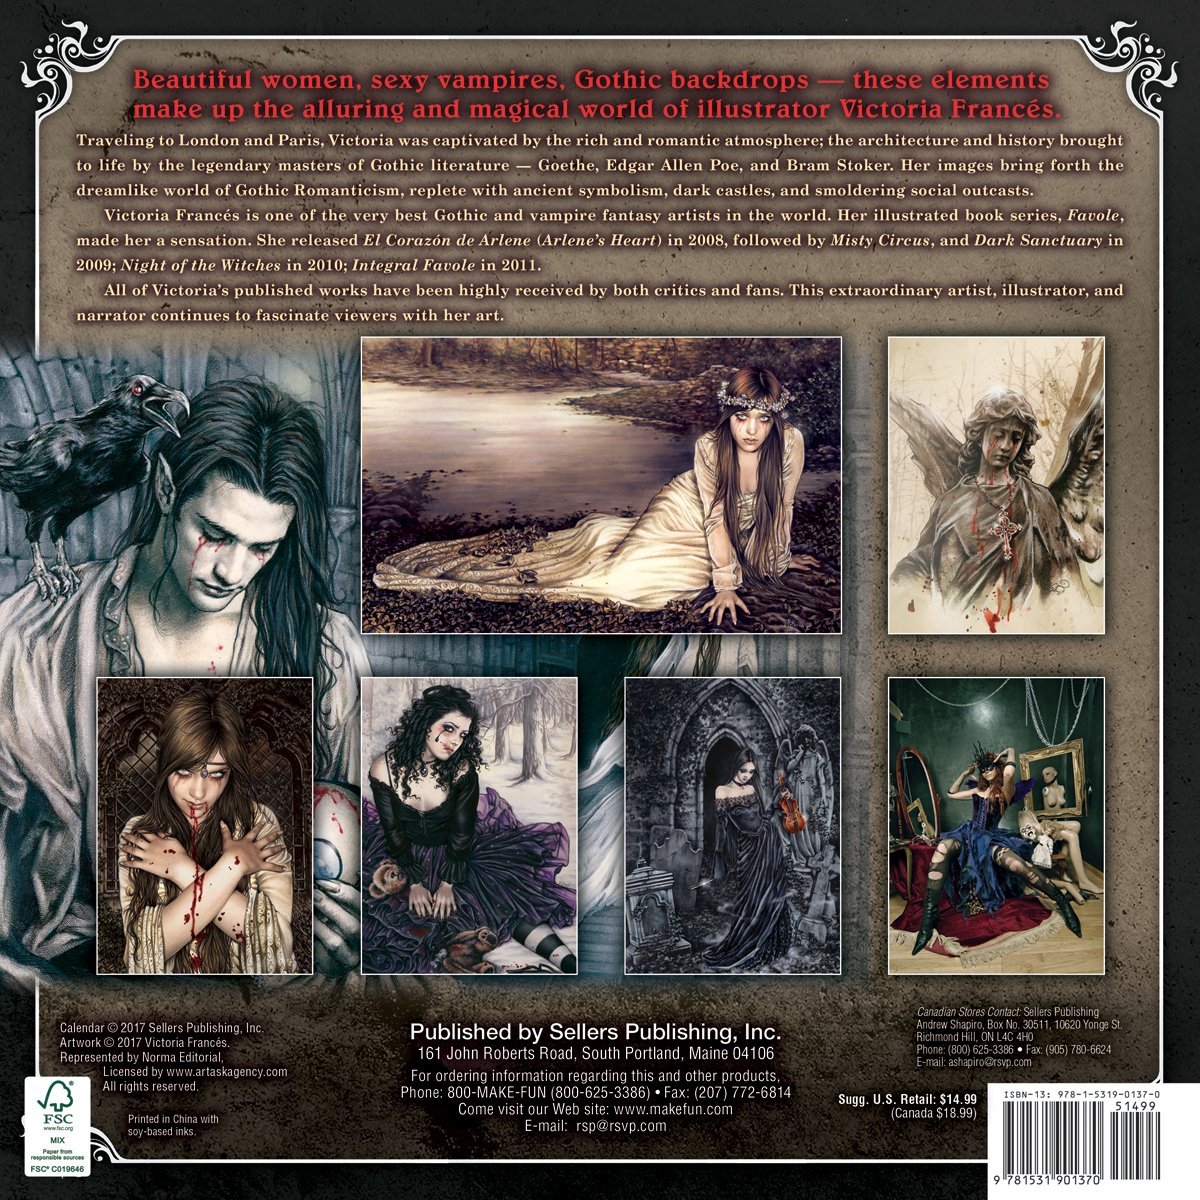 the gothic art of victoria frances 2018 wall calendar ca0137 victoria frances 9781531901370 amazoncom books